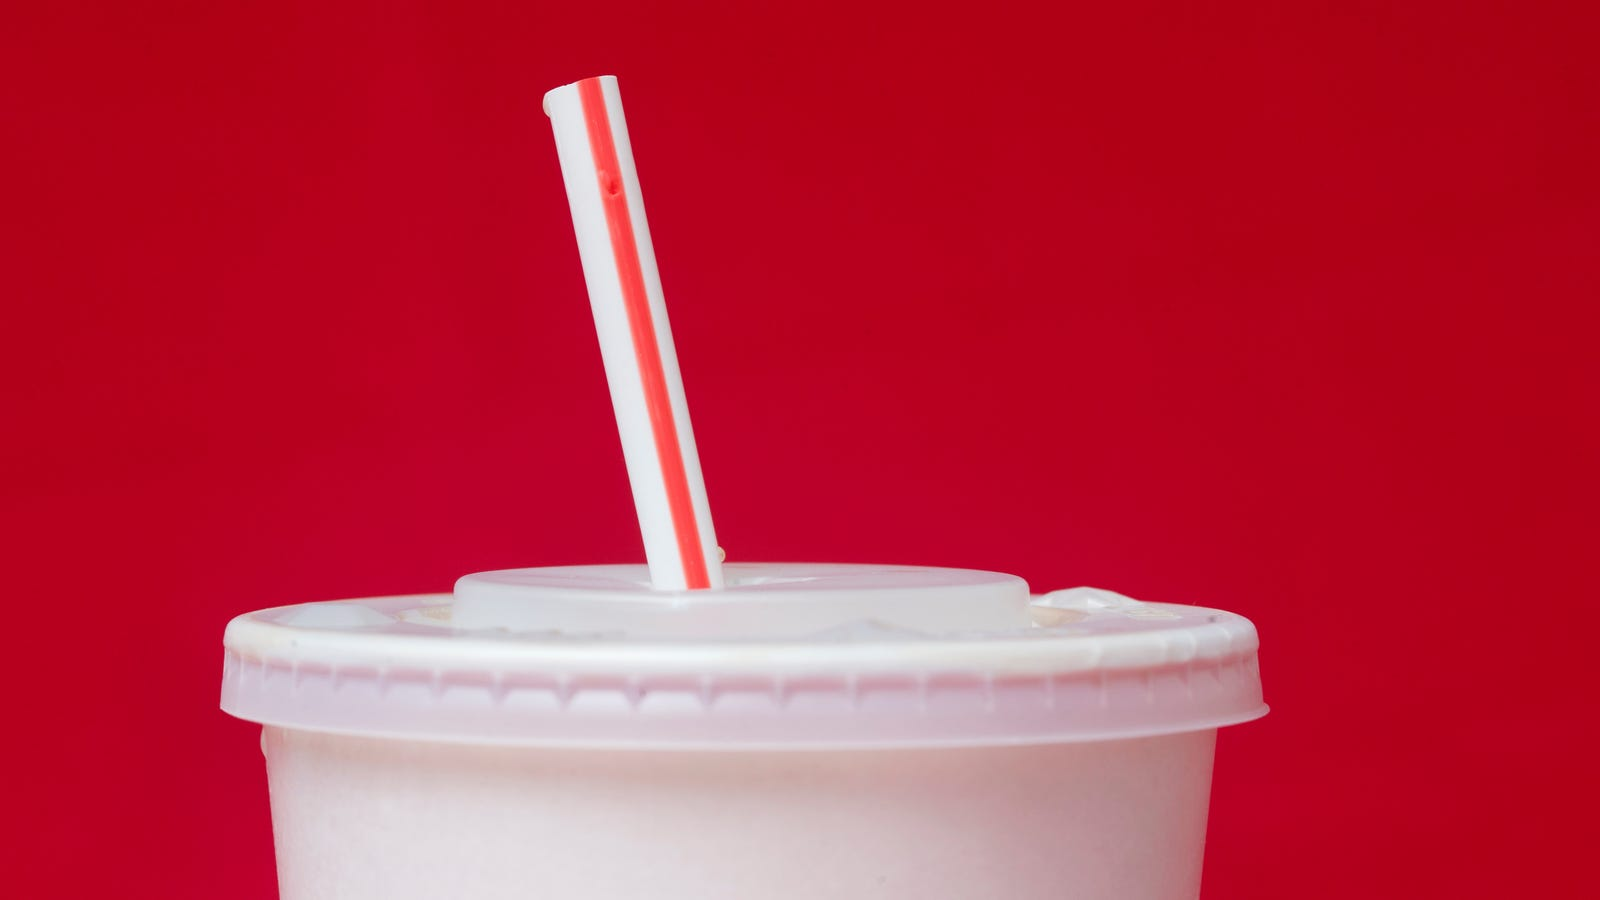 A Paper Straw Factory Is Opening Up in Britain Before a Planned UK Single-Use Plastics Ban